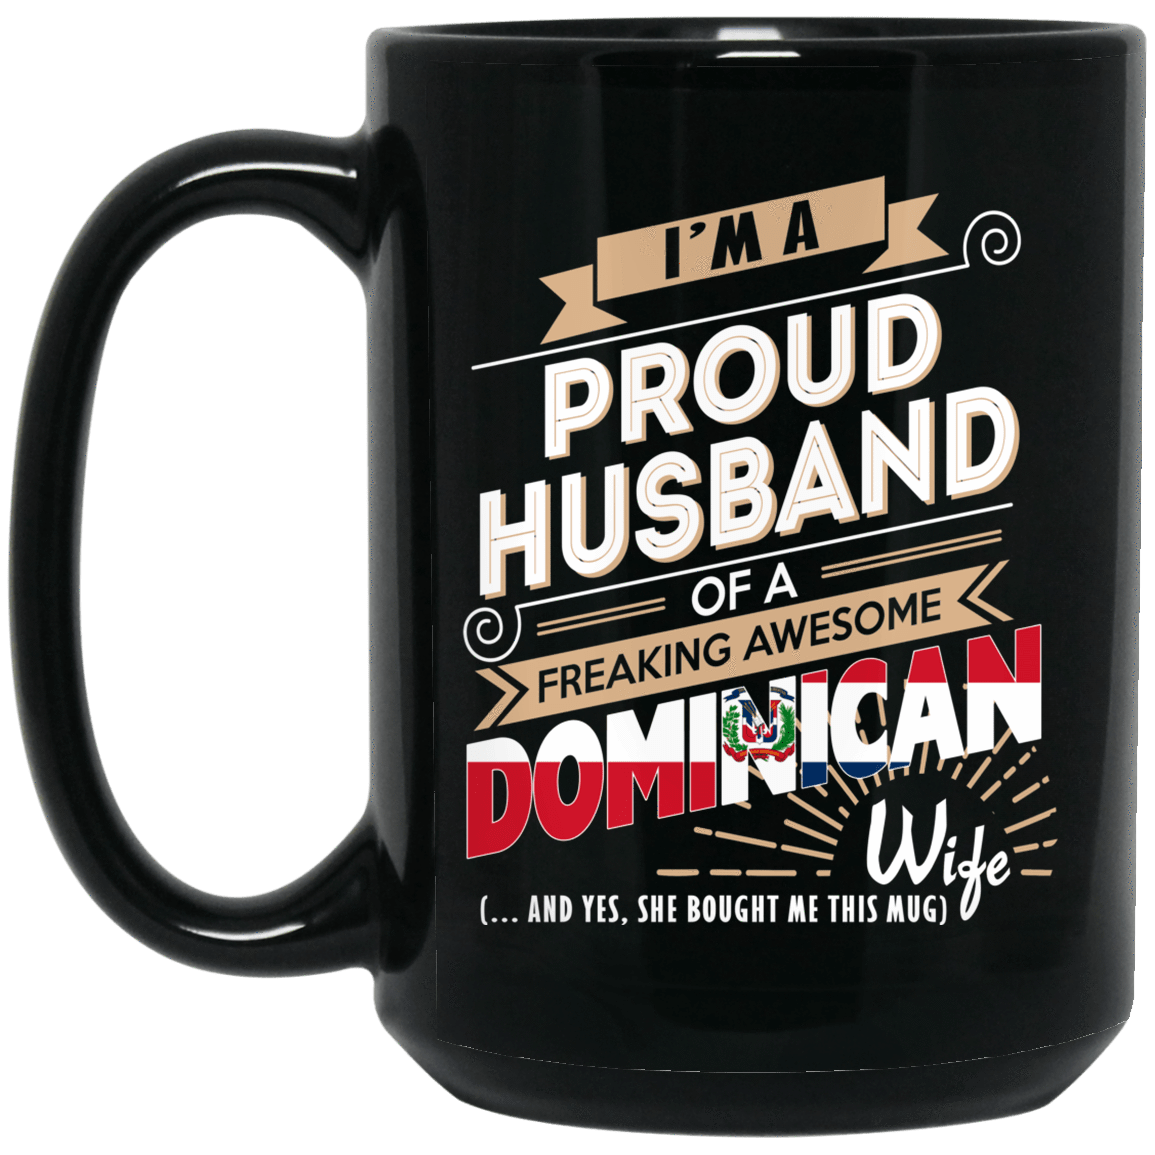 Proud Husband Of A Freaking Awesome Dominican Wife Mug 1066-10182-72136594-49311 - Tee Ript